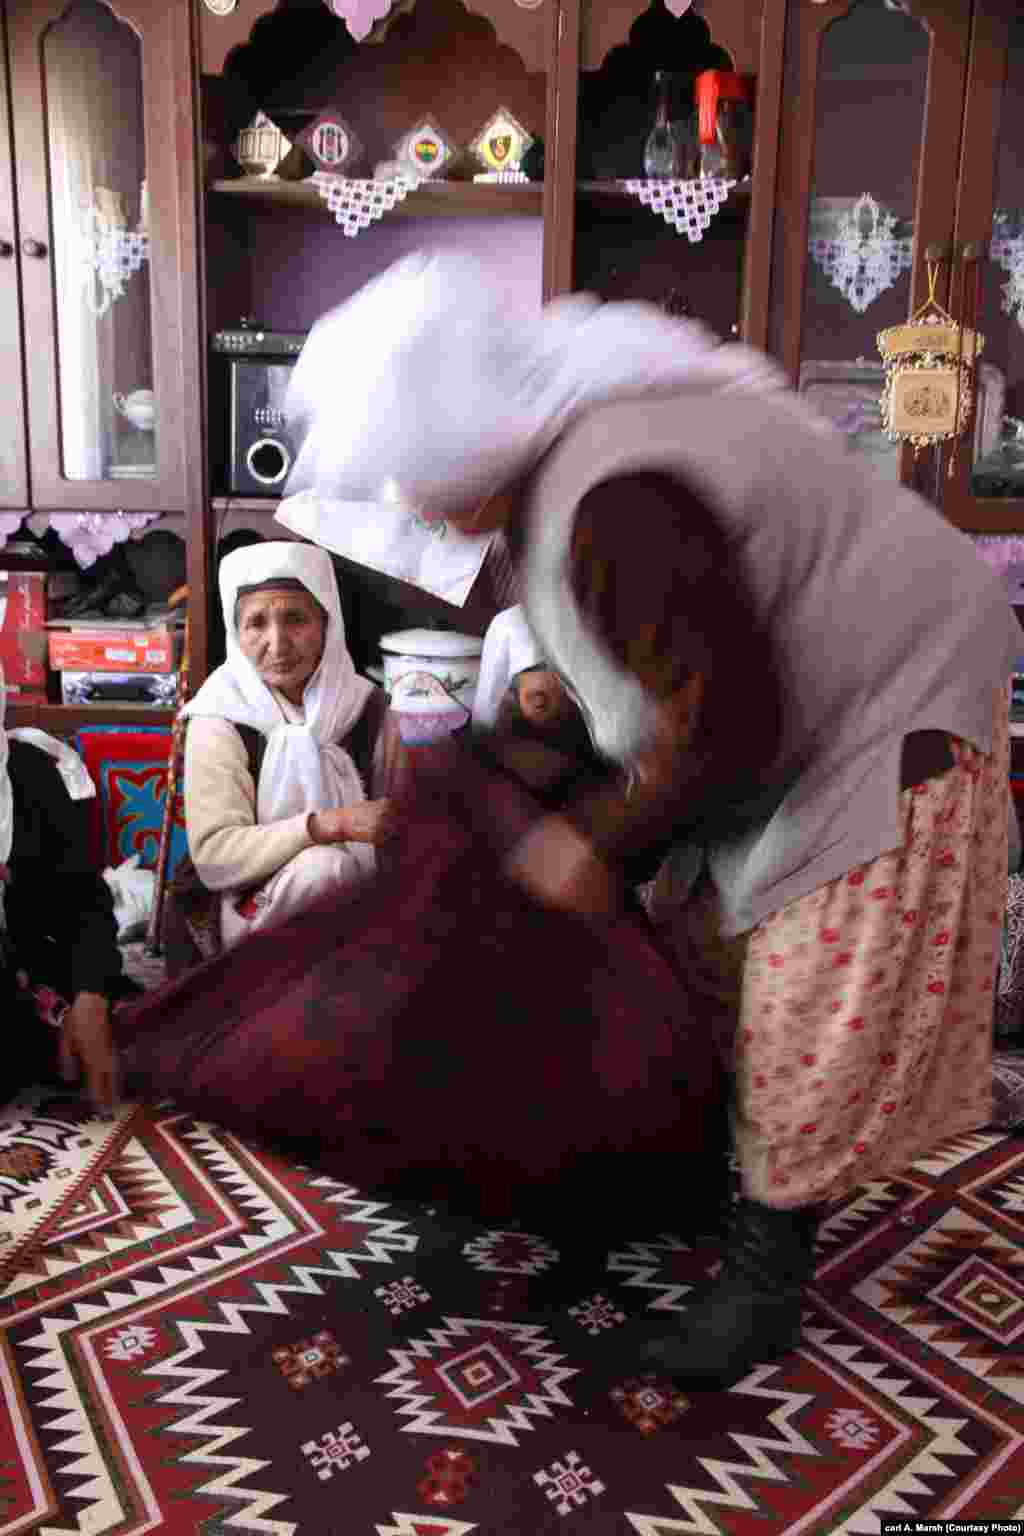 Women collect items for a bride's dowry, which usually represents a considerable expense for families. Among the Pamir Kyrgyz, weddings often help to strengthen tribal alliances and reconcile feuding factions.